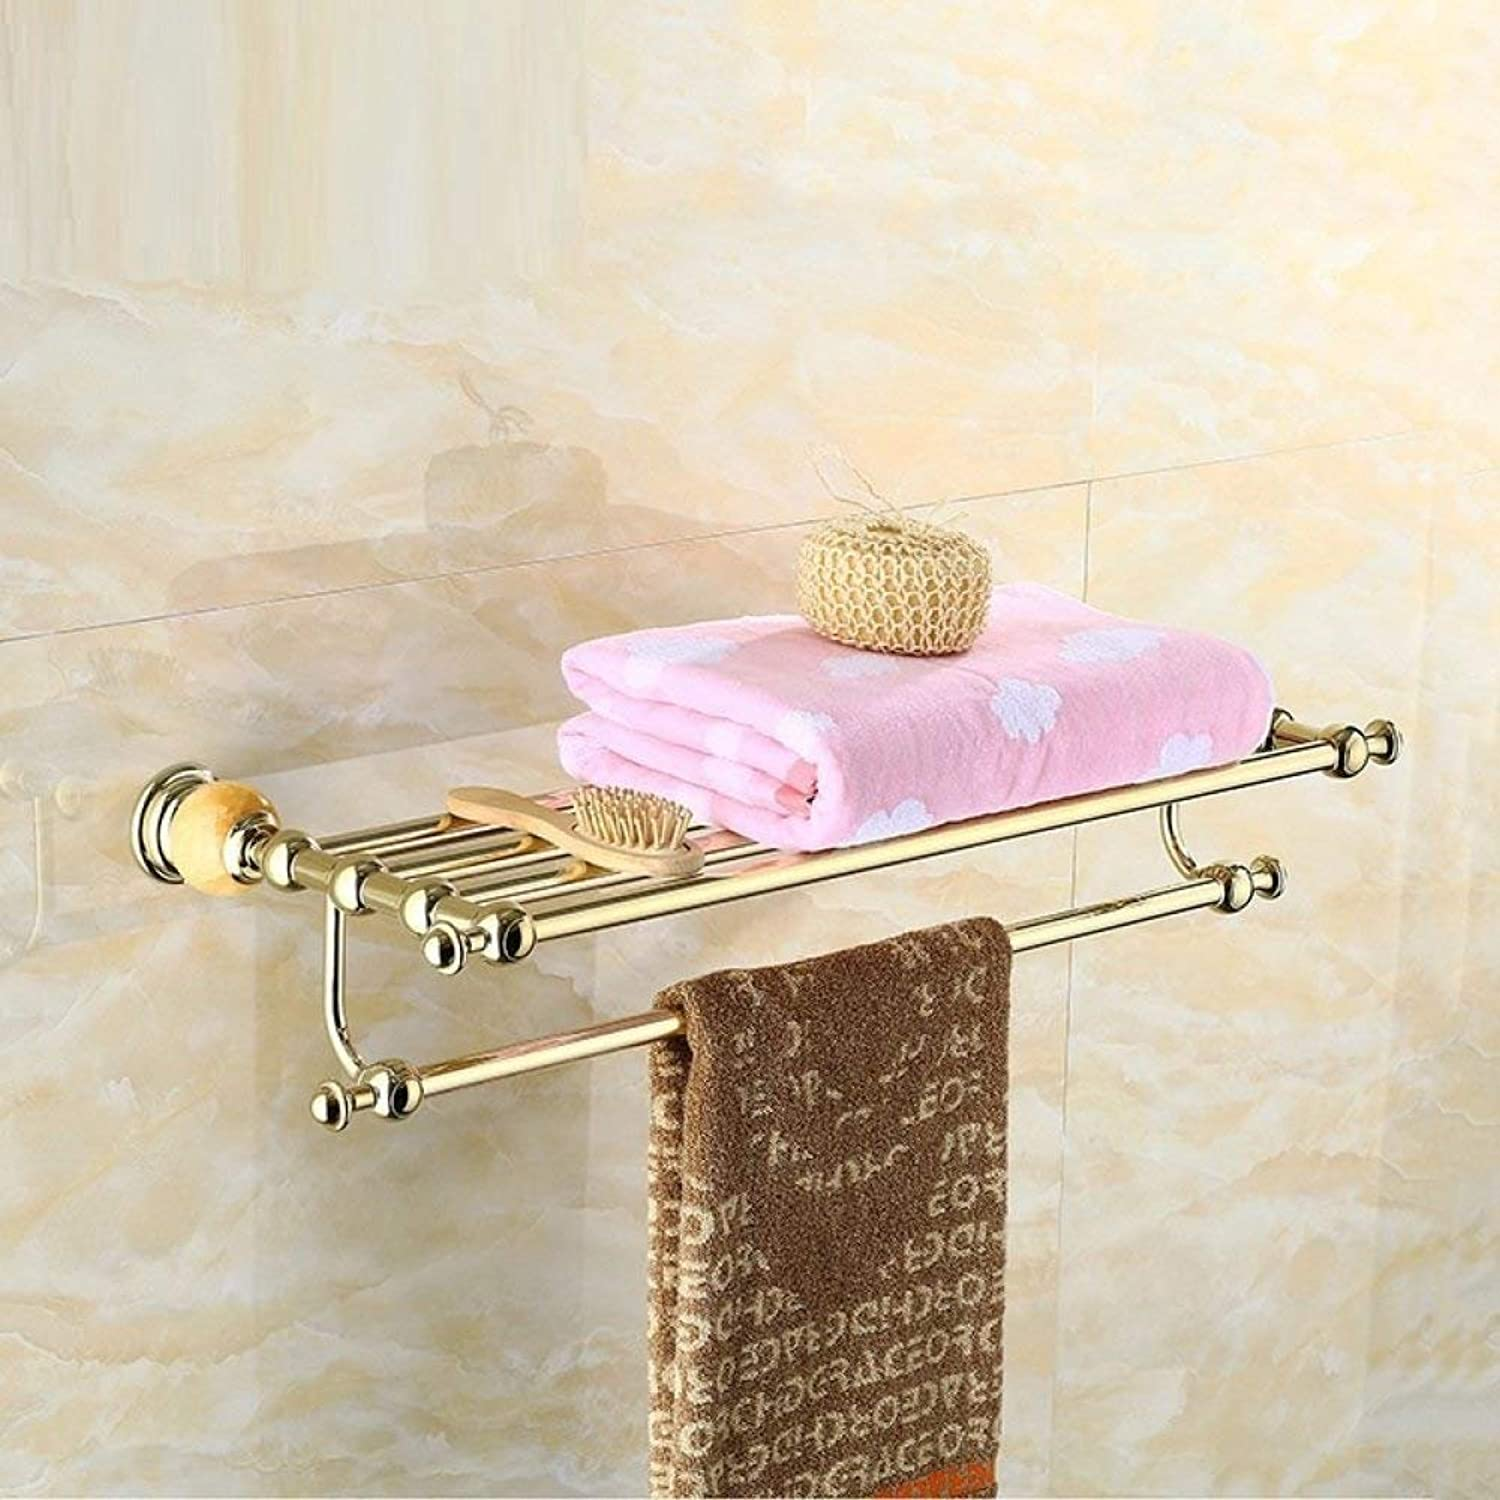 Retro Style Door European-Heated Towels a Copper Alloy The Drilling Platform, Home Bathroom, Corrosion The Luxury Hotel Top Range Decorative Accessories